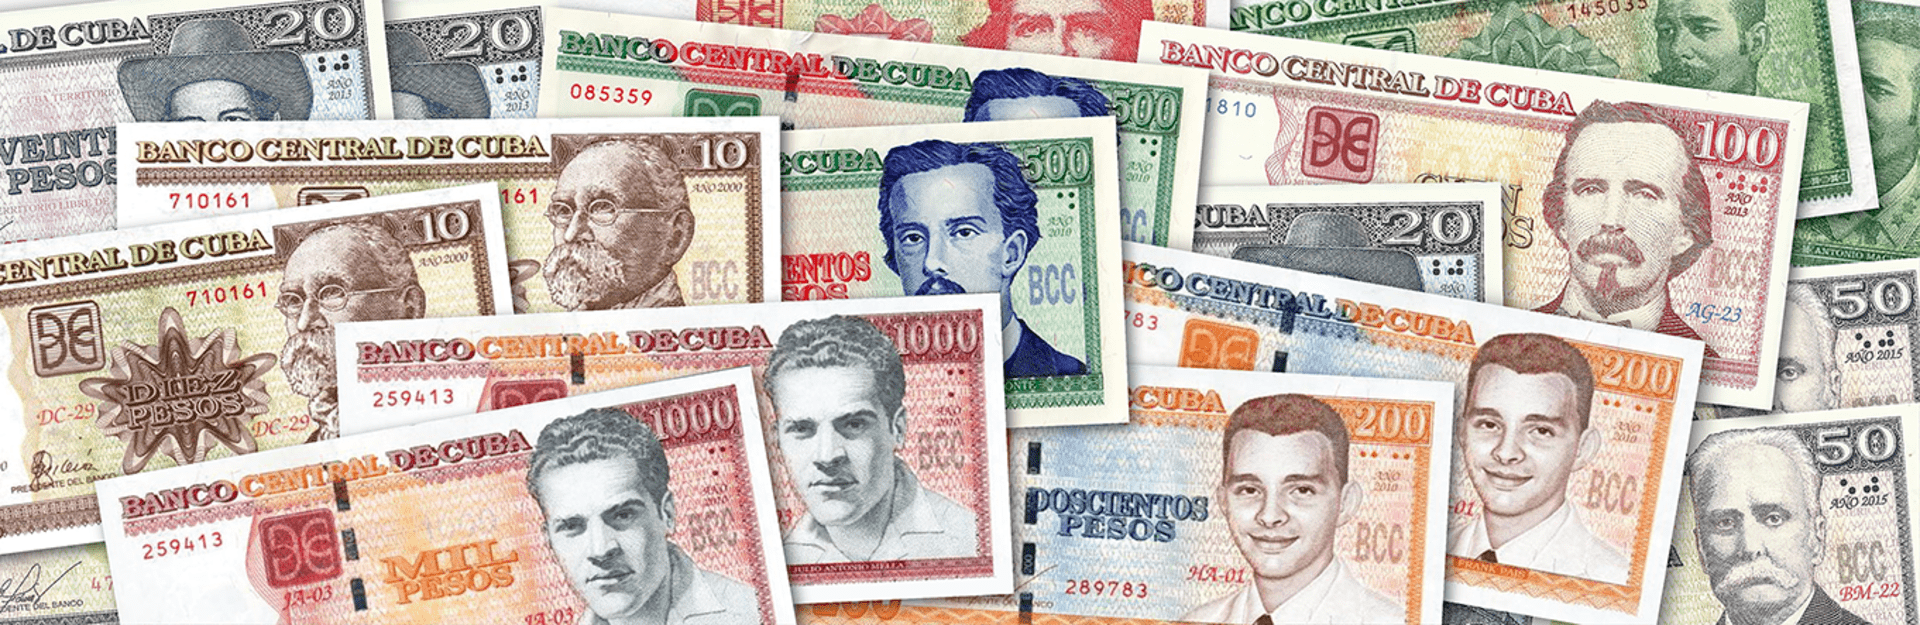 Currency in Cuba, currency exchange, Varadero